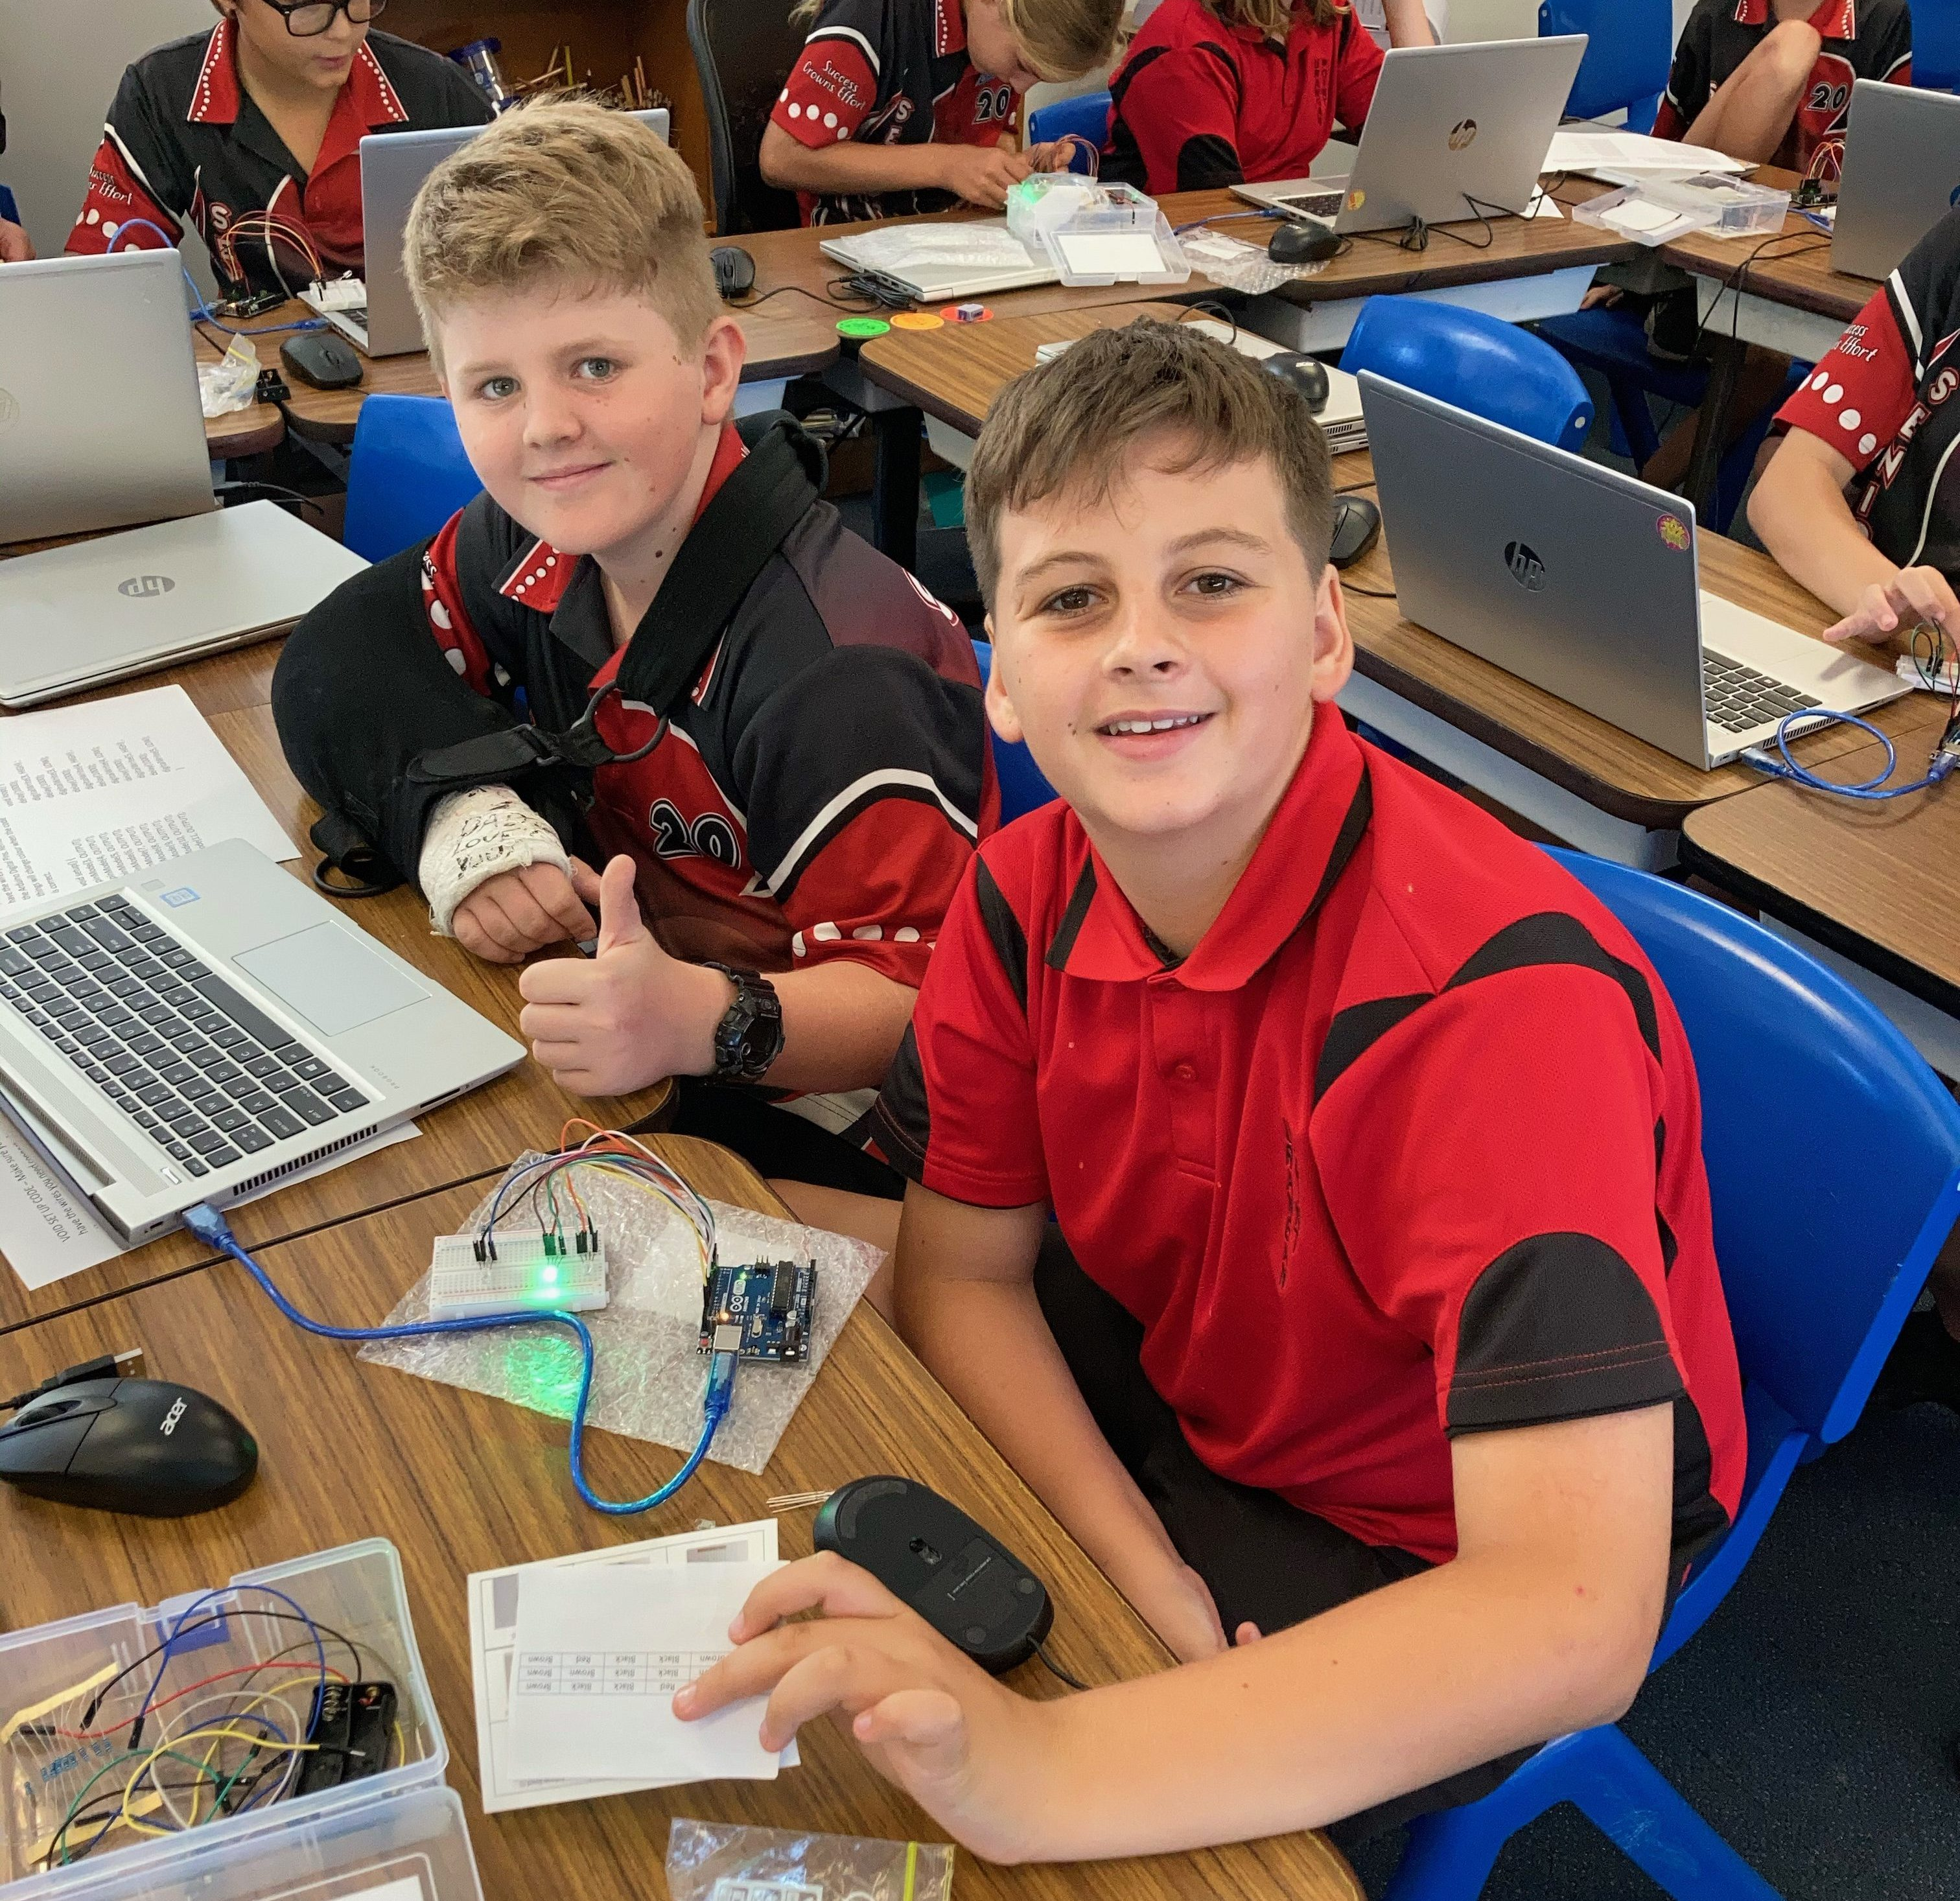 Two students with a laptop and an electronics project. Both smile at the camera and one gives a thumbs up